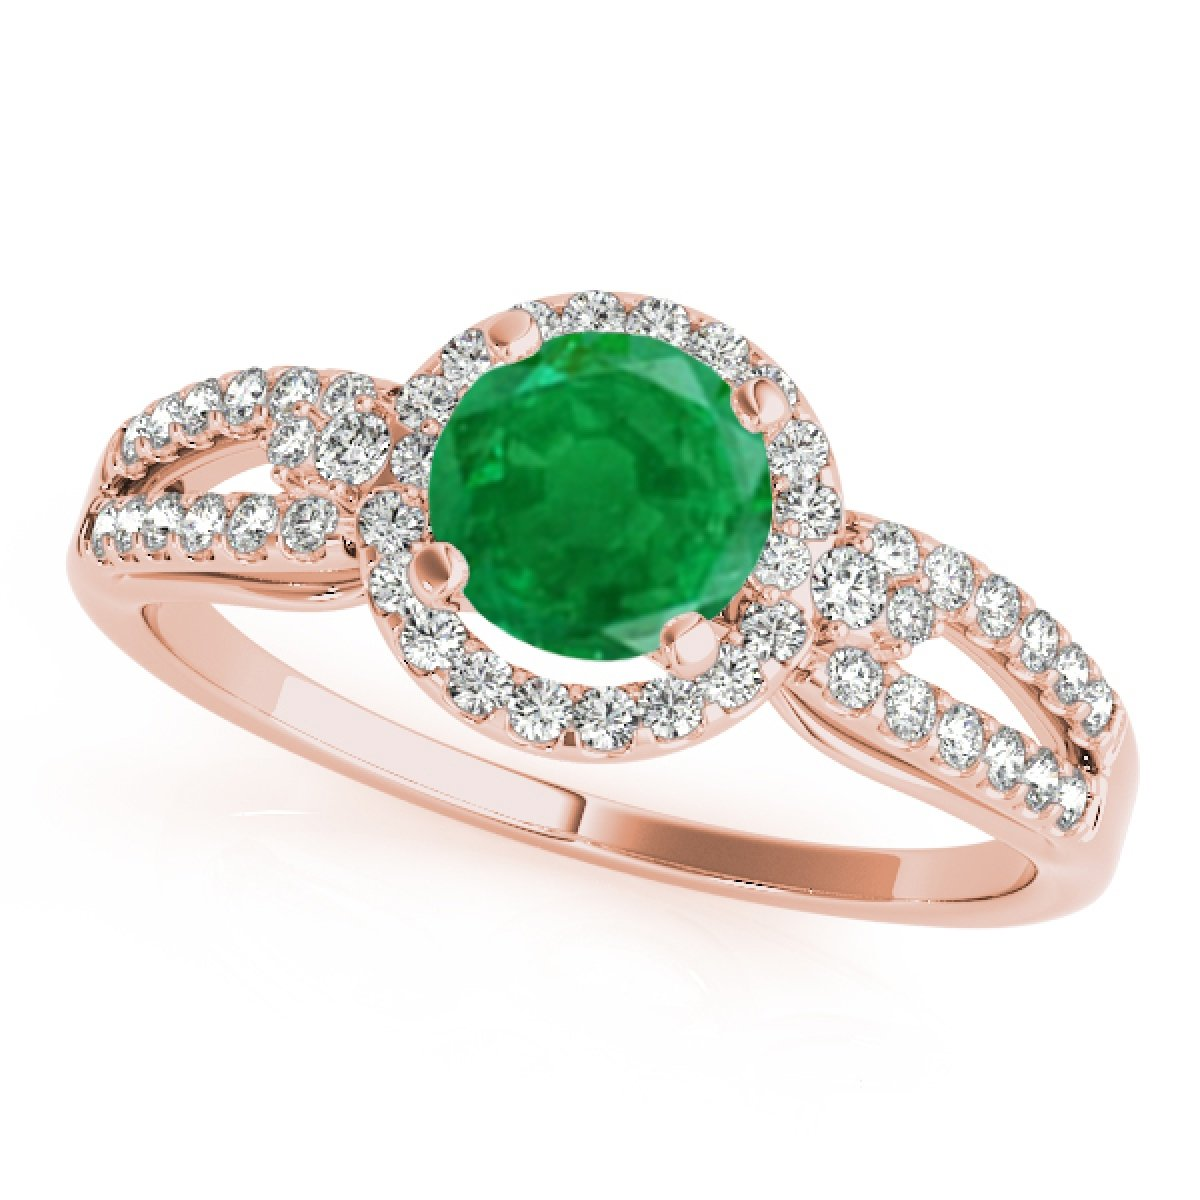 93ebdcf8493504 MauliJewels 1.25 Carat Round Cut Antique Halo Emerald Diamond Bridal Ring Band  Set Women